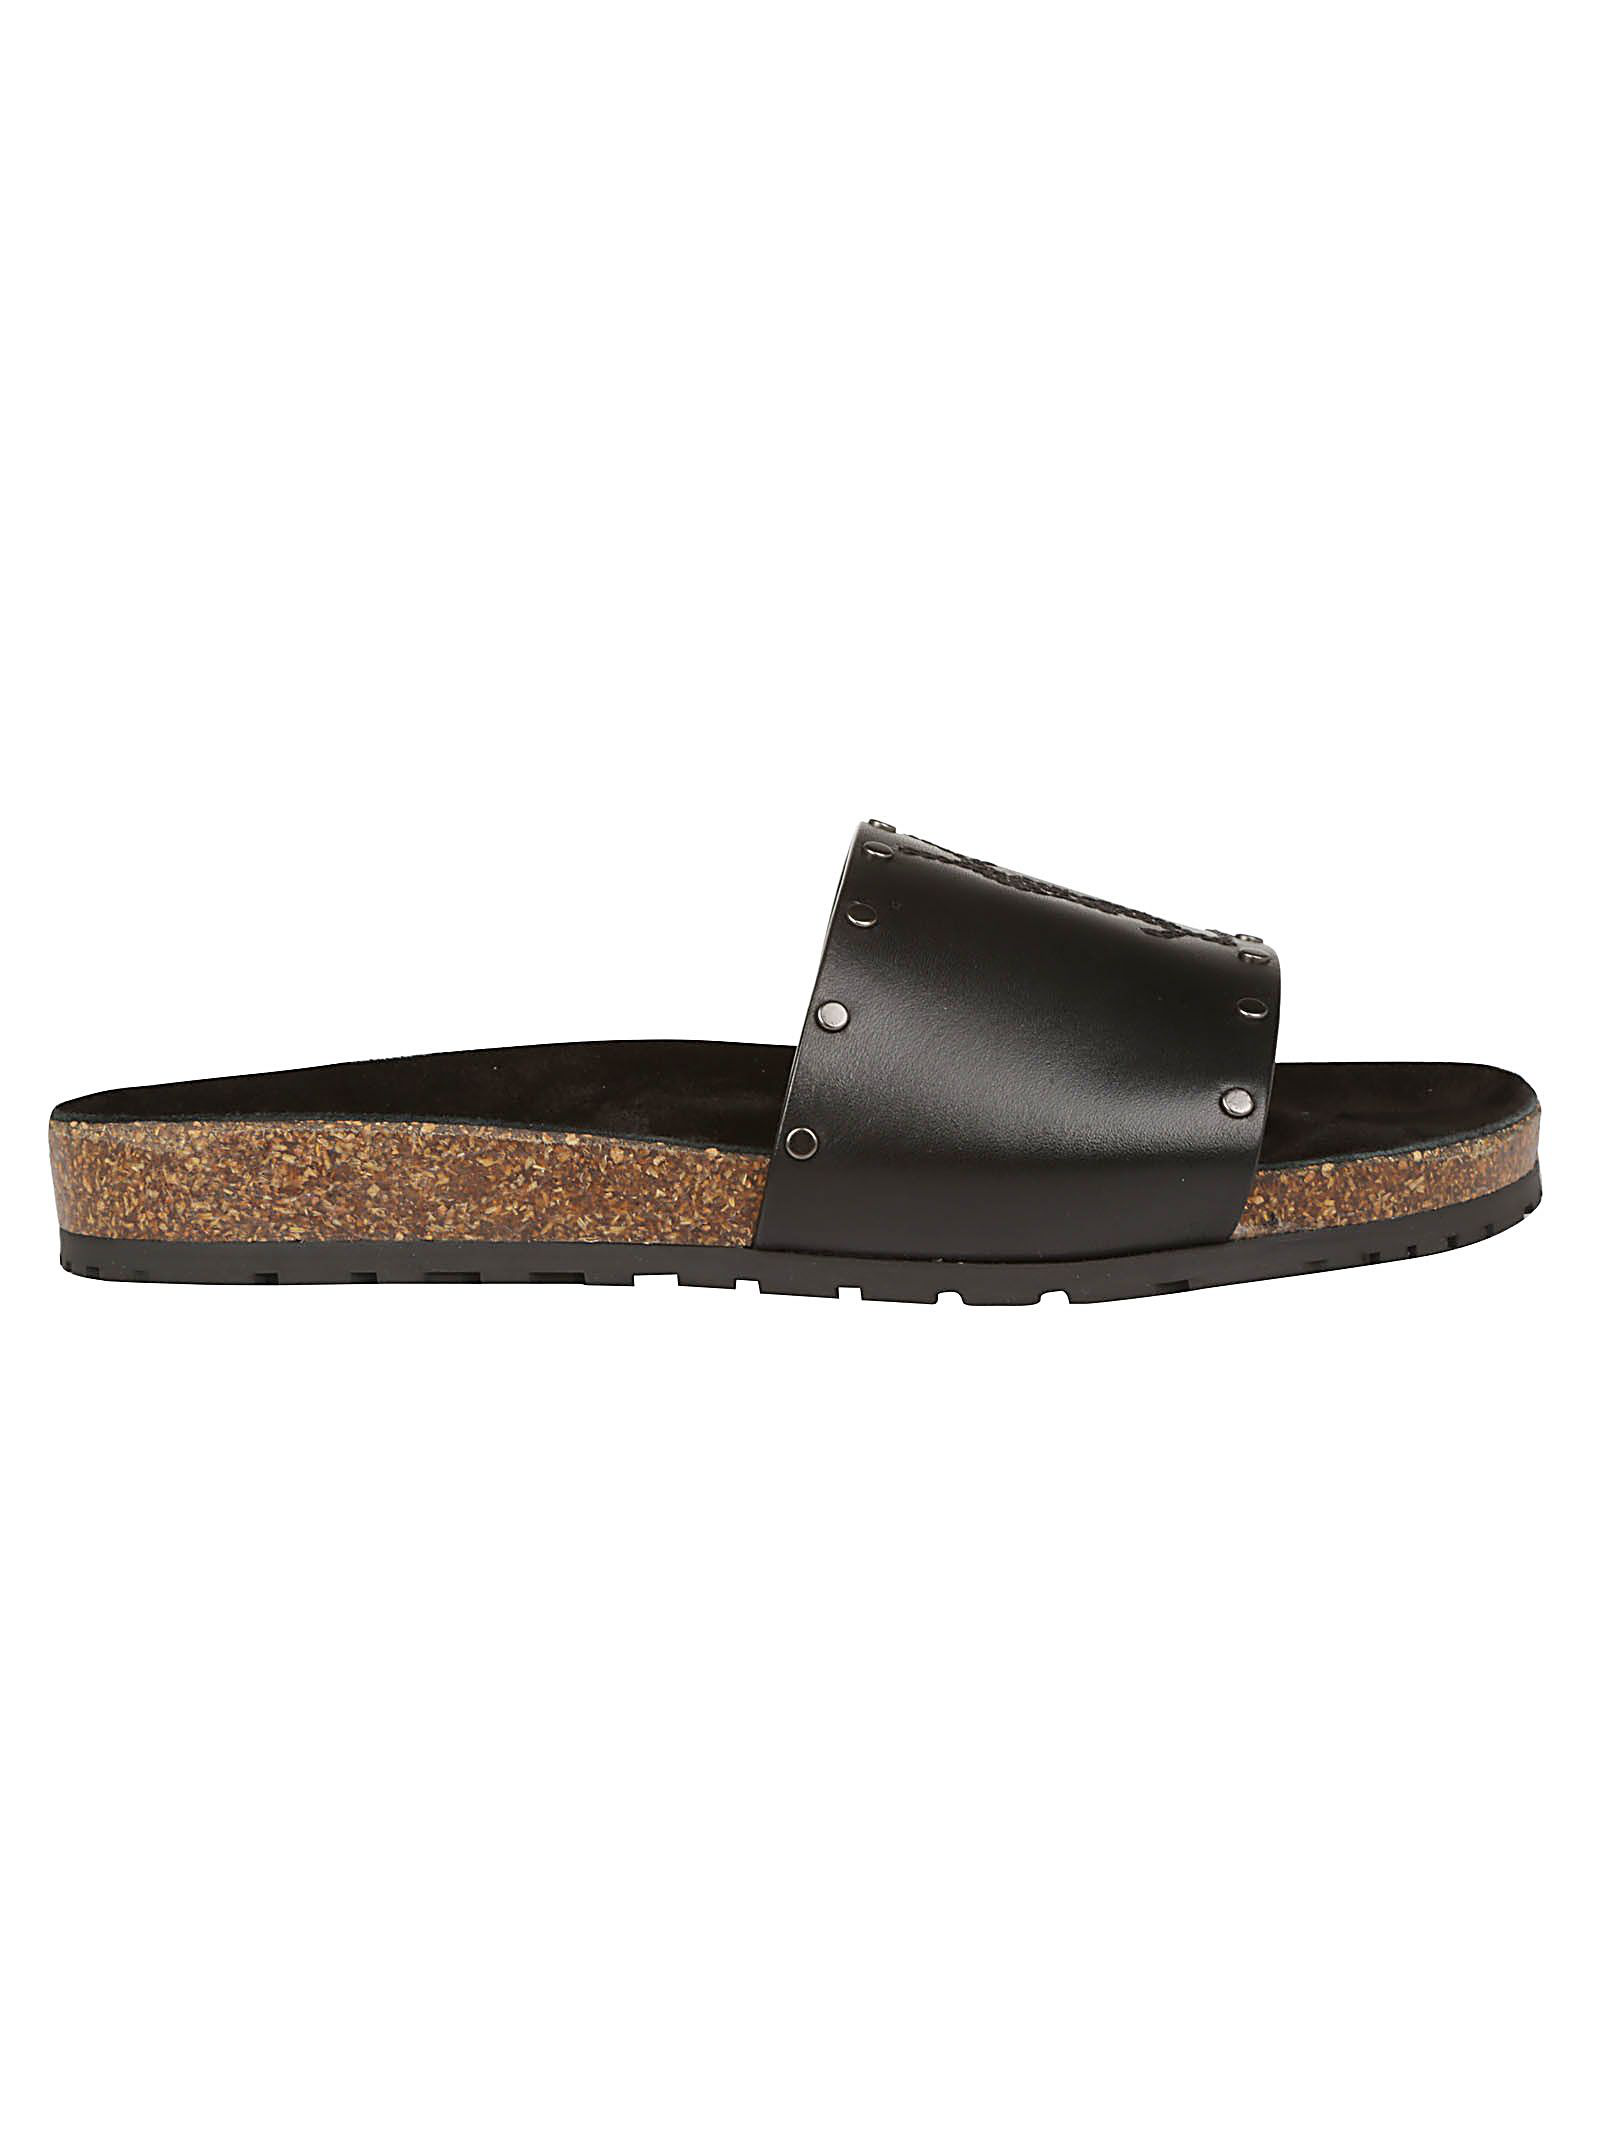 65bd57e0d87e Saint Laurent Jimmy Ysl Sandals In Leather Decorated With Studs In Black